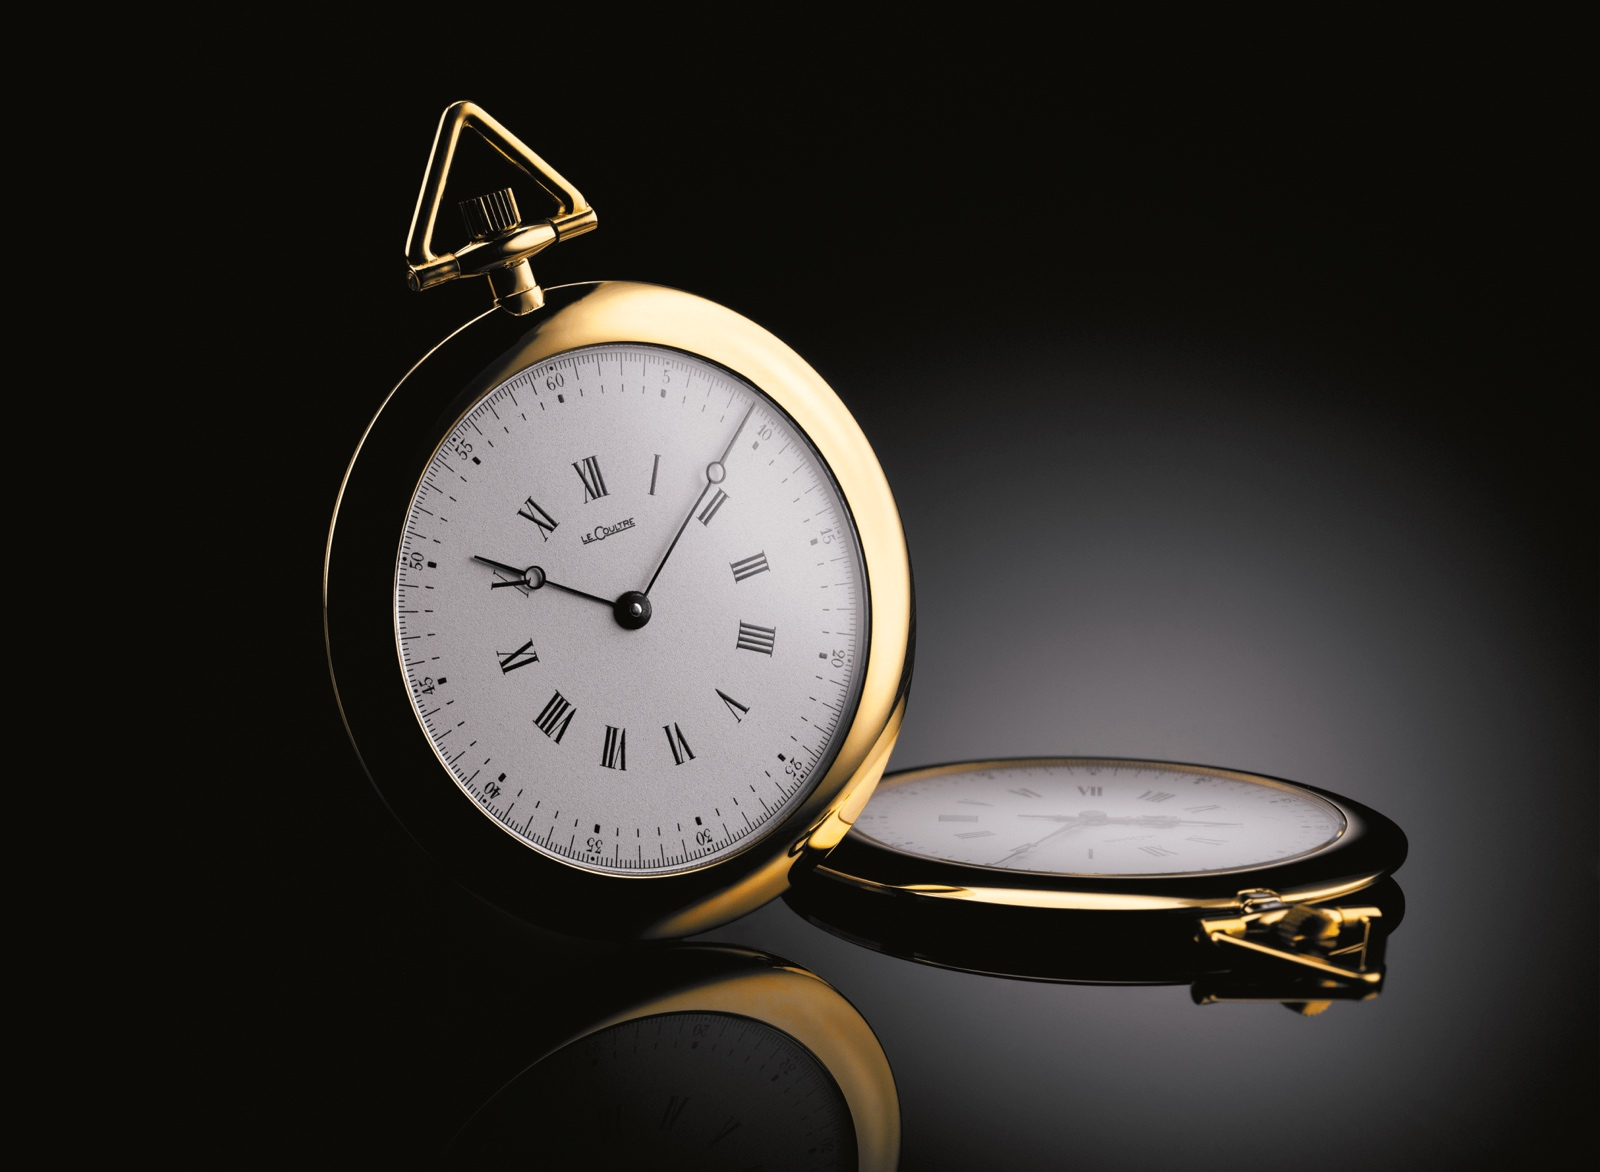 Jaeger-LeCoultre calibre 145 knife pocket watch